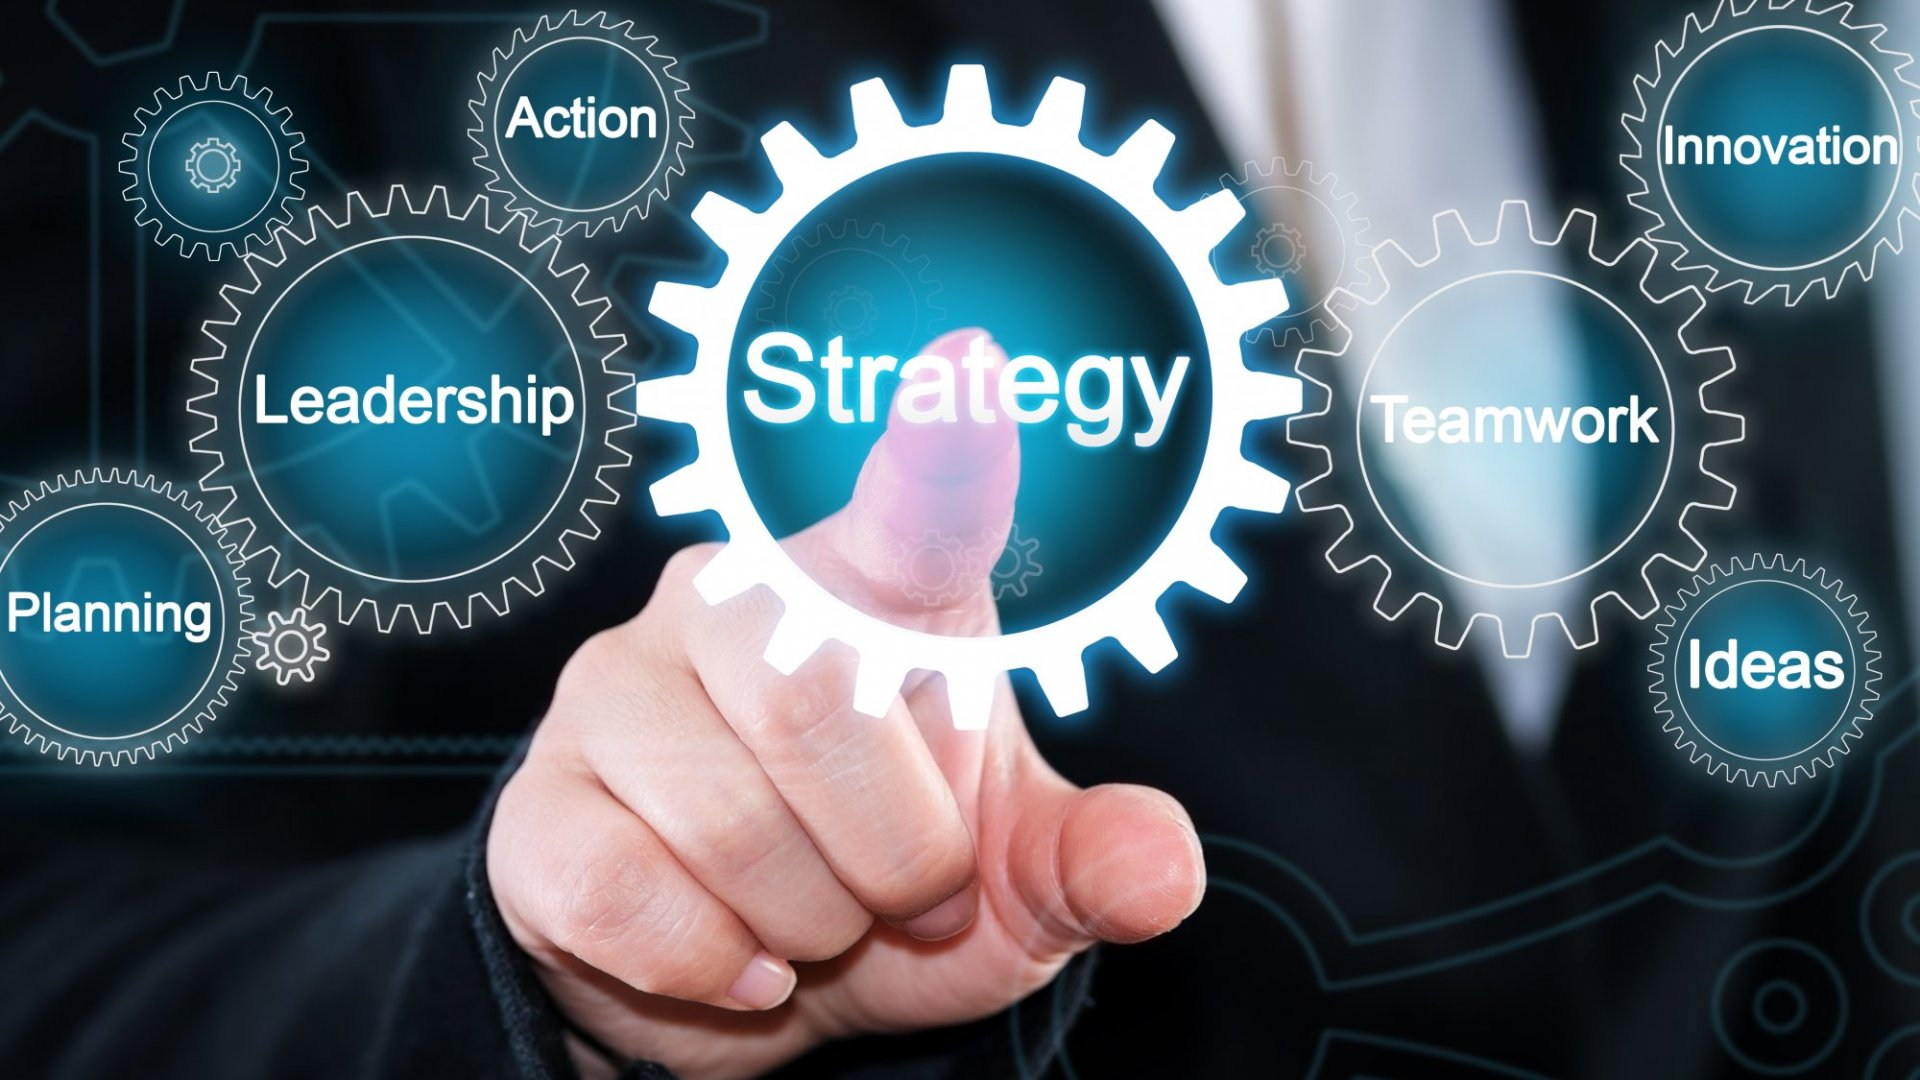 7 Things You Should Expect From The Best Strategy Executives